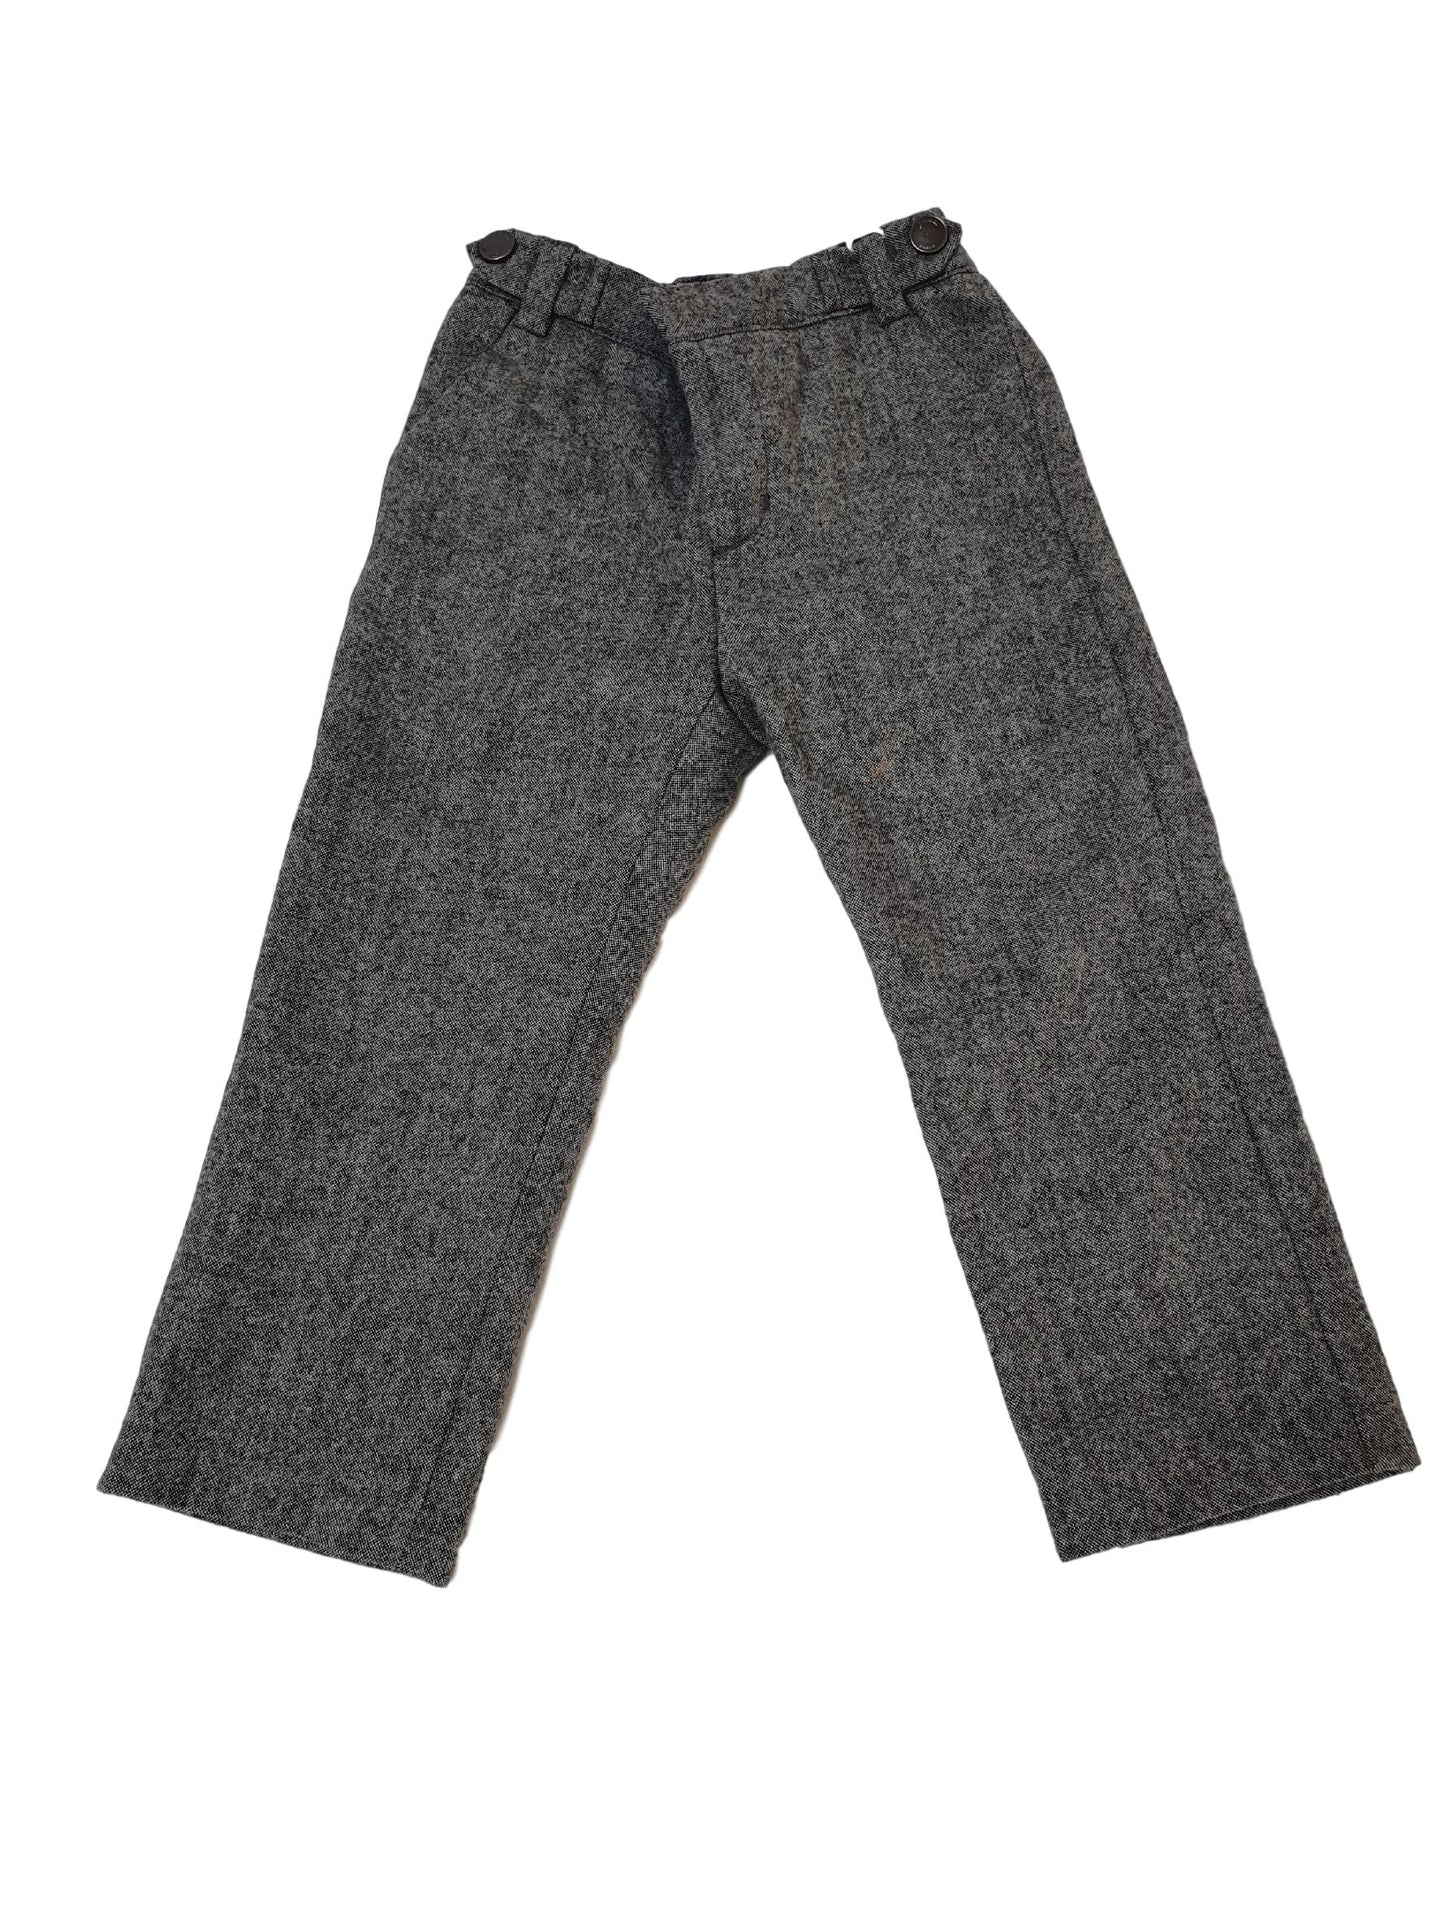 JACADI boy trousers 2yo